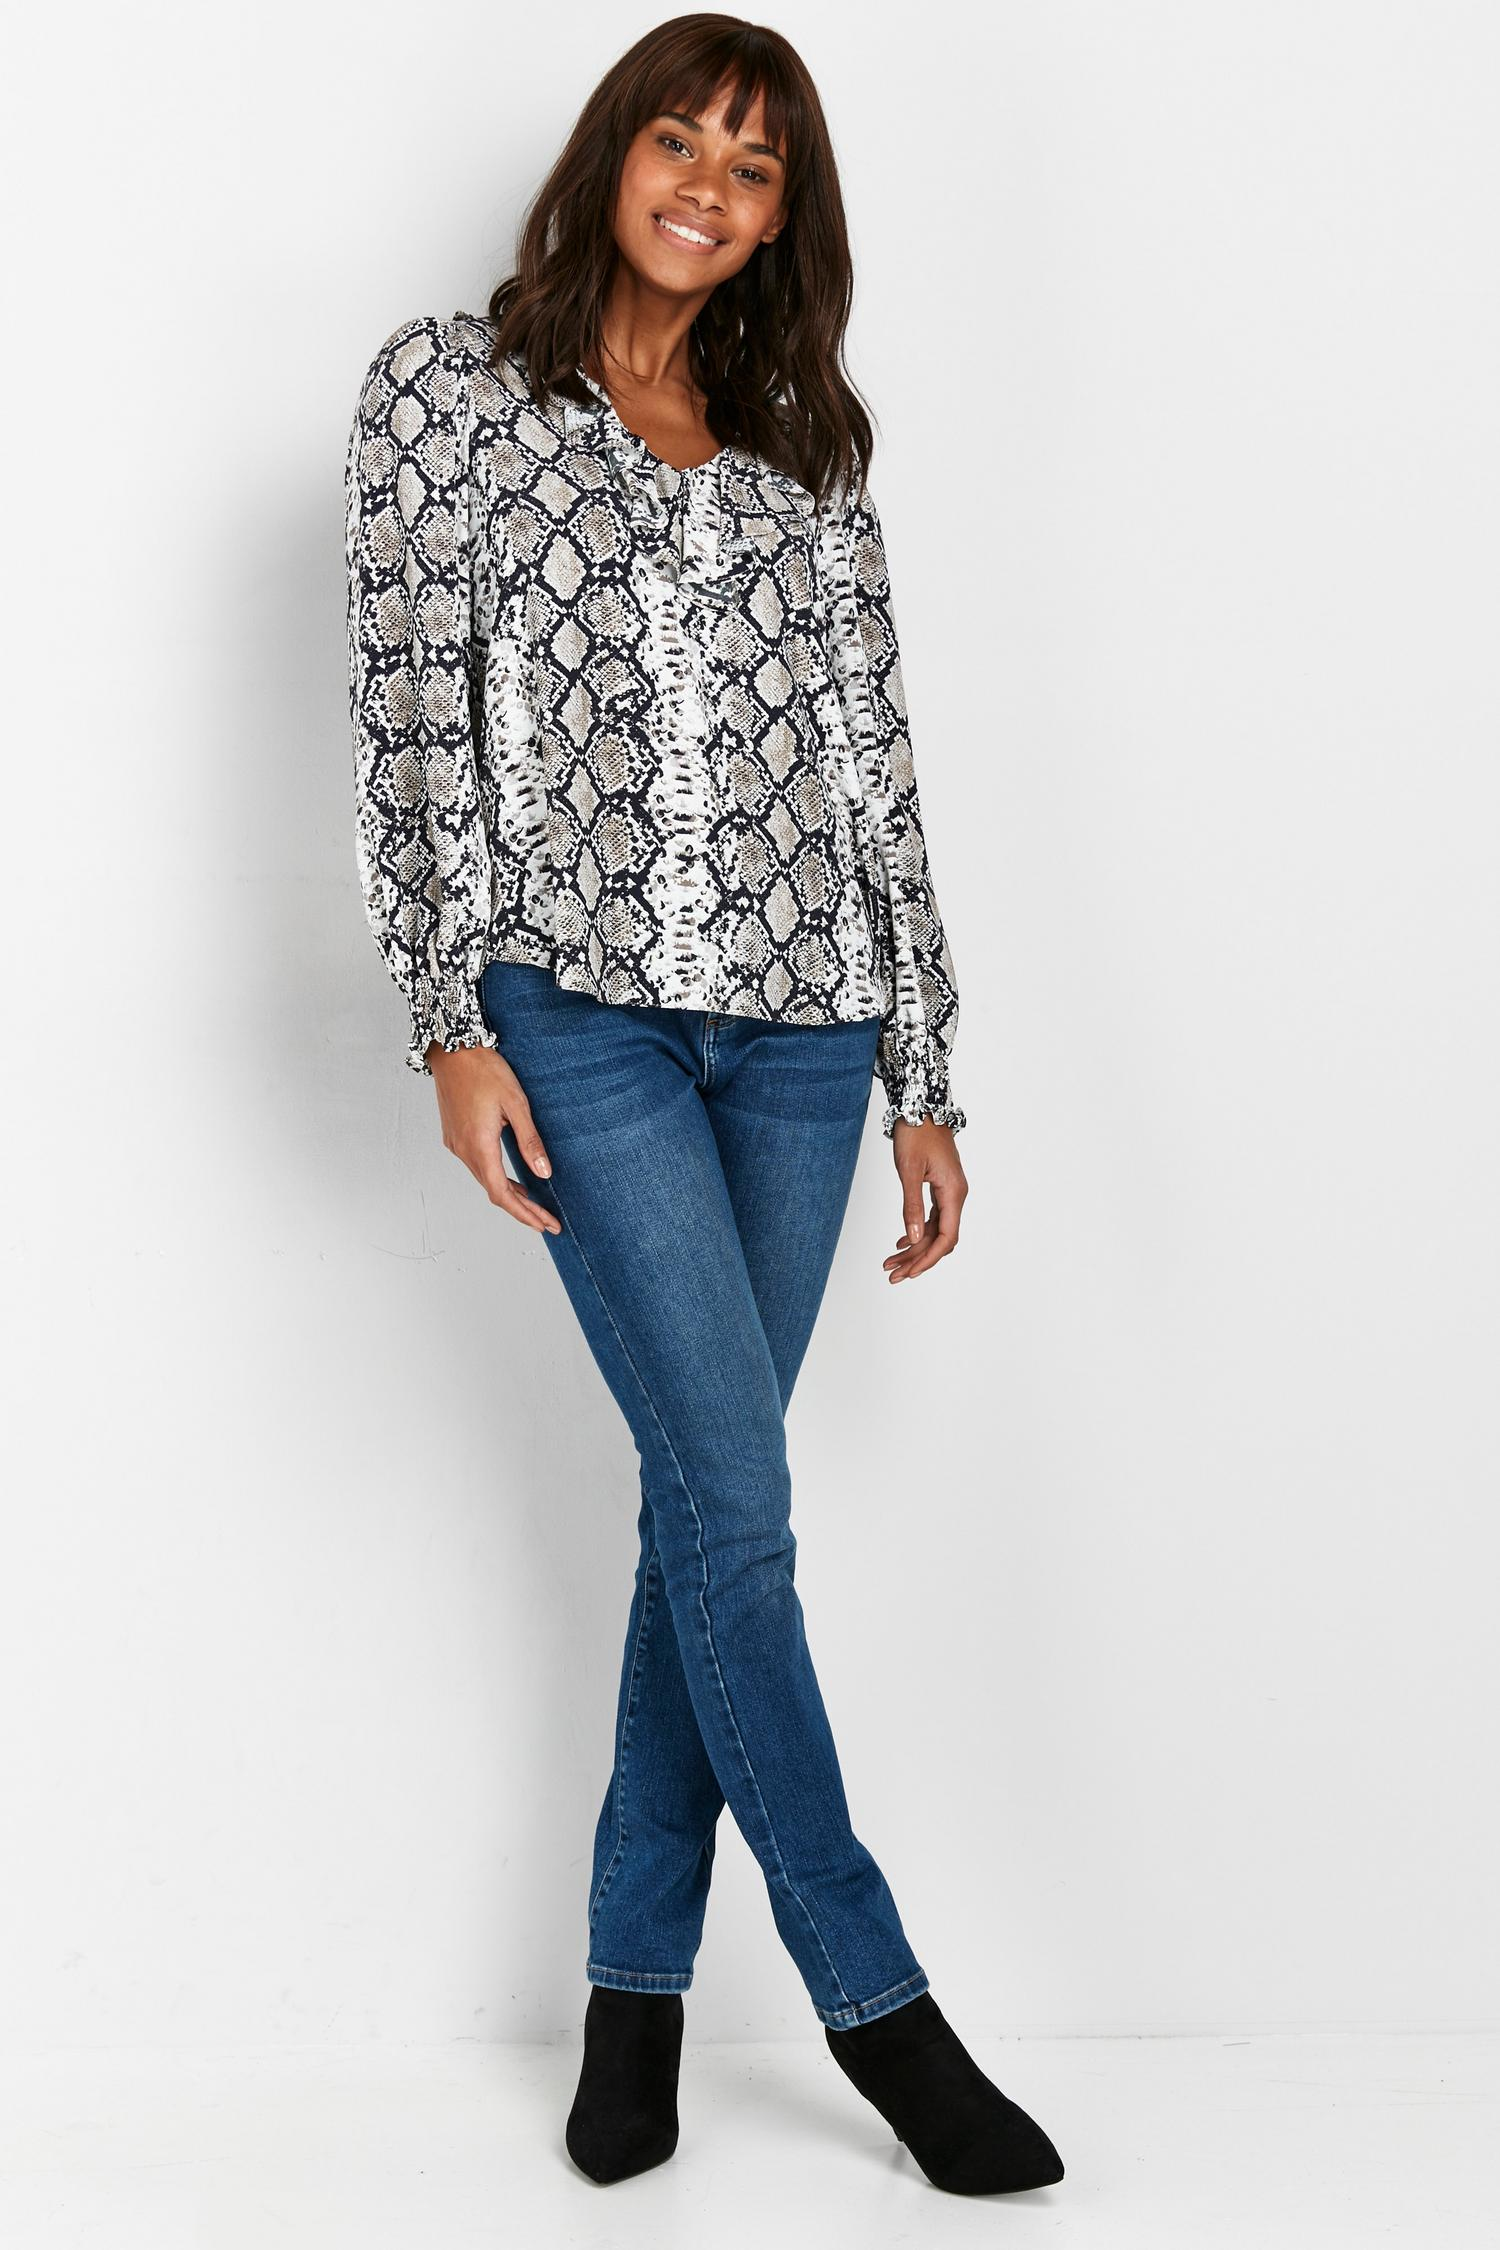 131 Tall Grey Snake Print Ruffle Blouse image number 1